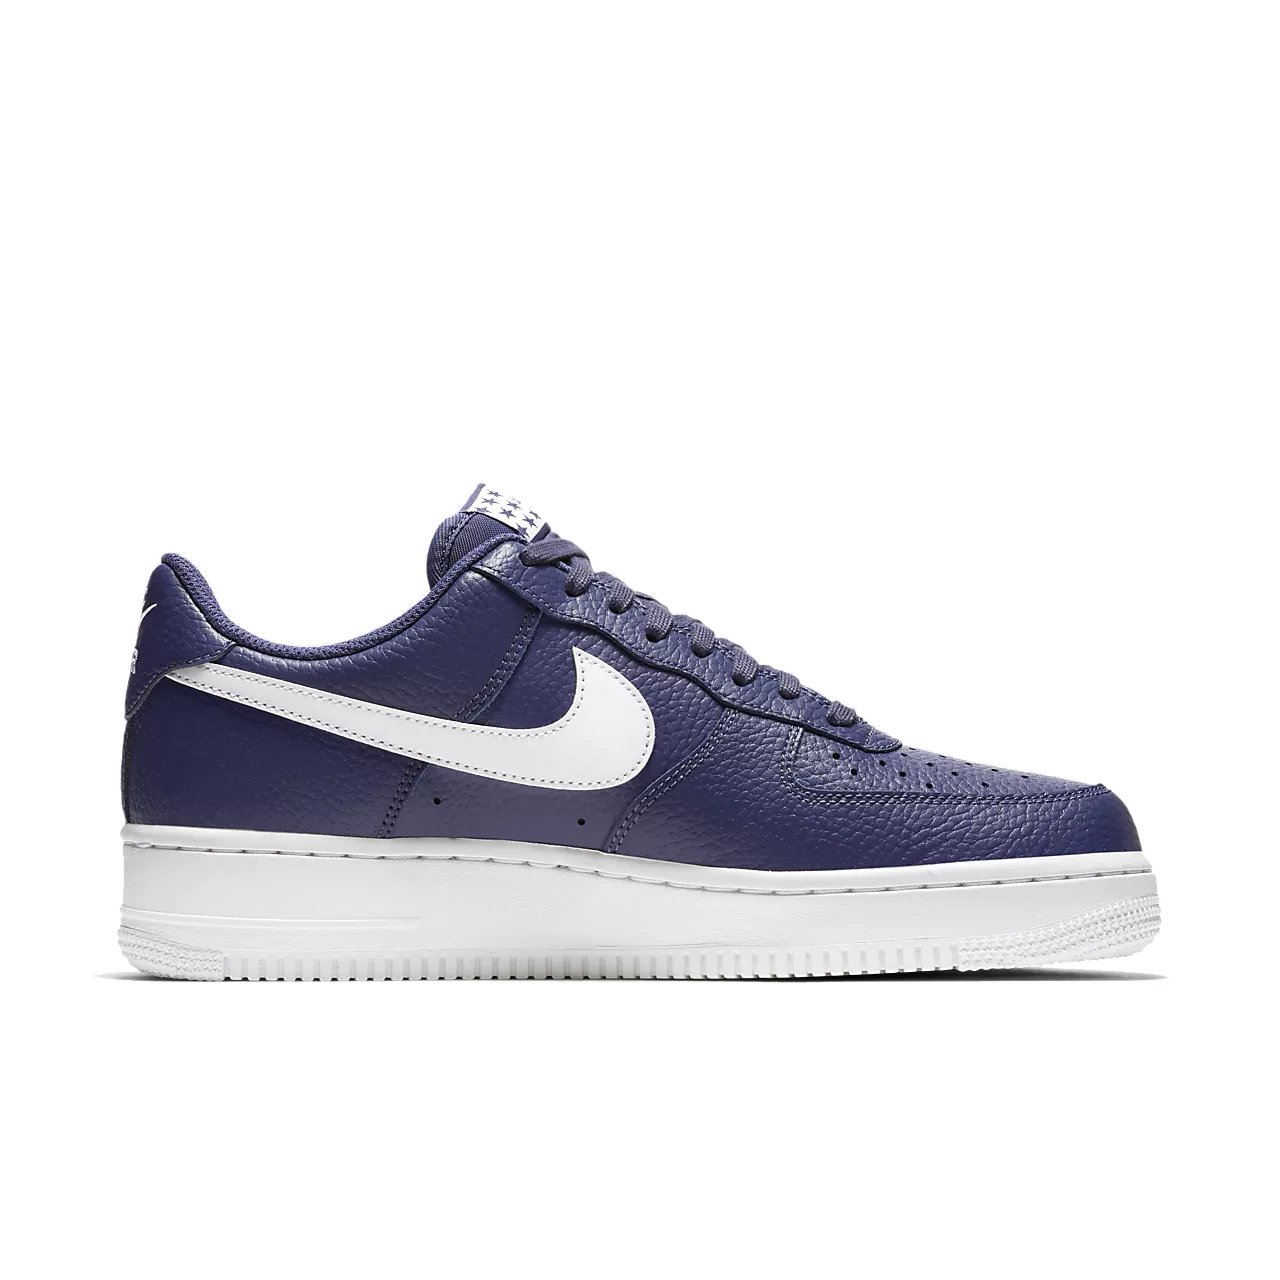 the latest 93259 5dc7d Galleon - NIKE Mens Air Force 1 Low 07 Stars Basketball Shoes Blue Recall White  AA4083-401 Size 12.5